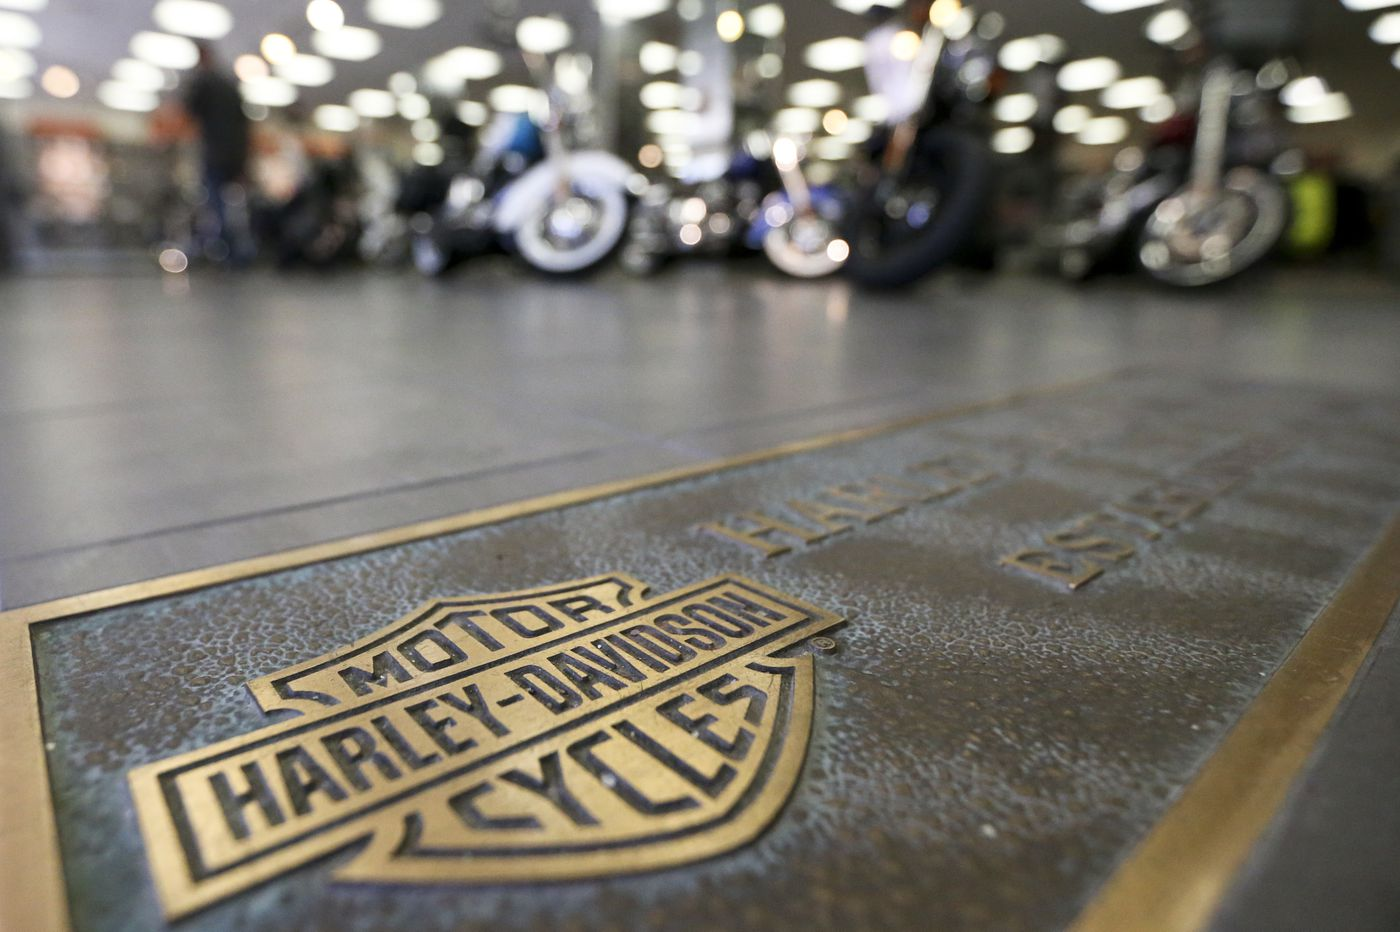 Harley-Davidson could be first of many U.S. firms to shift production overseas